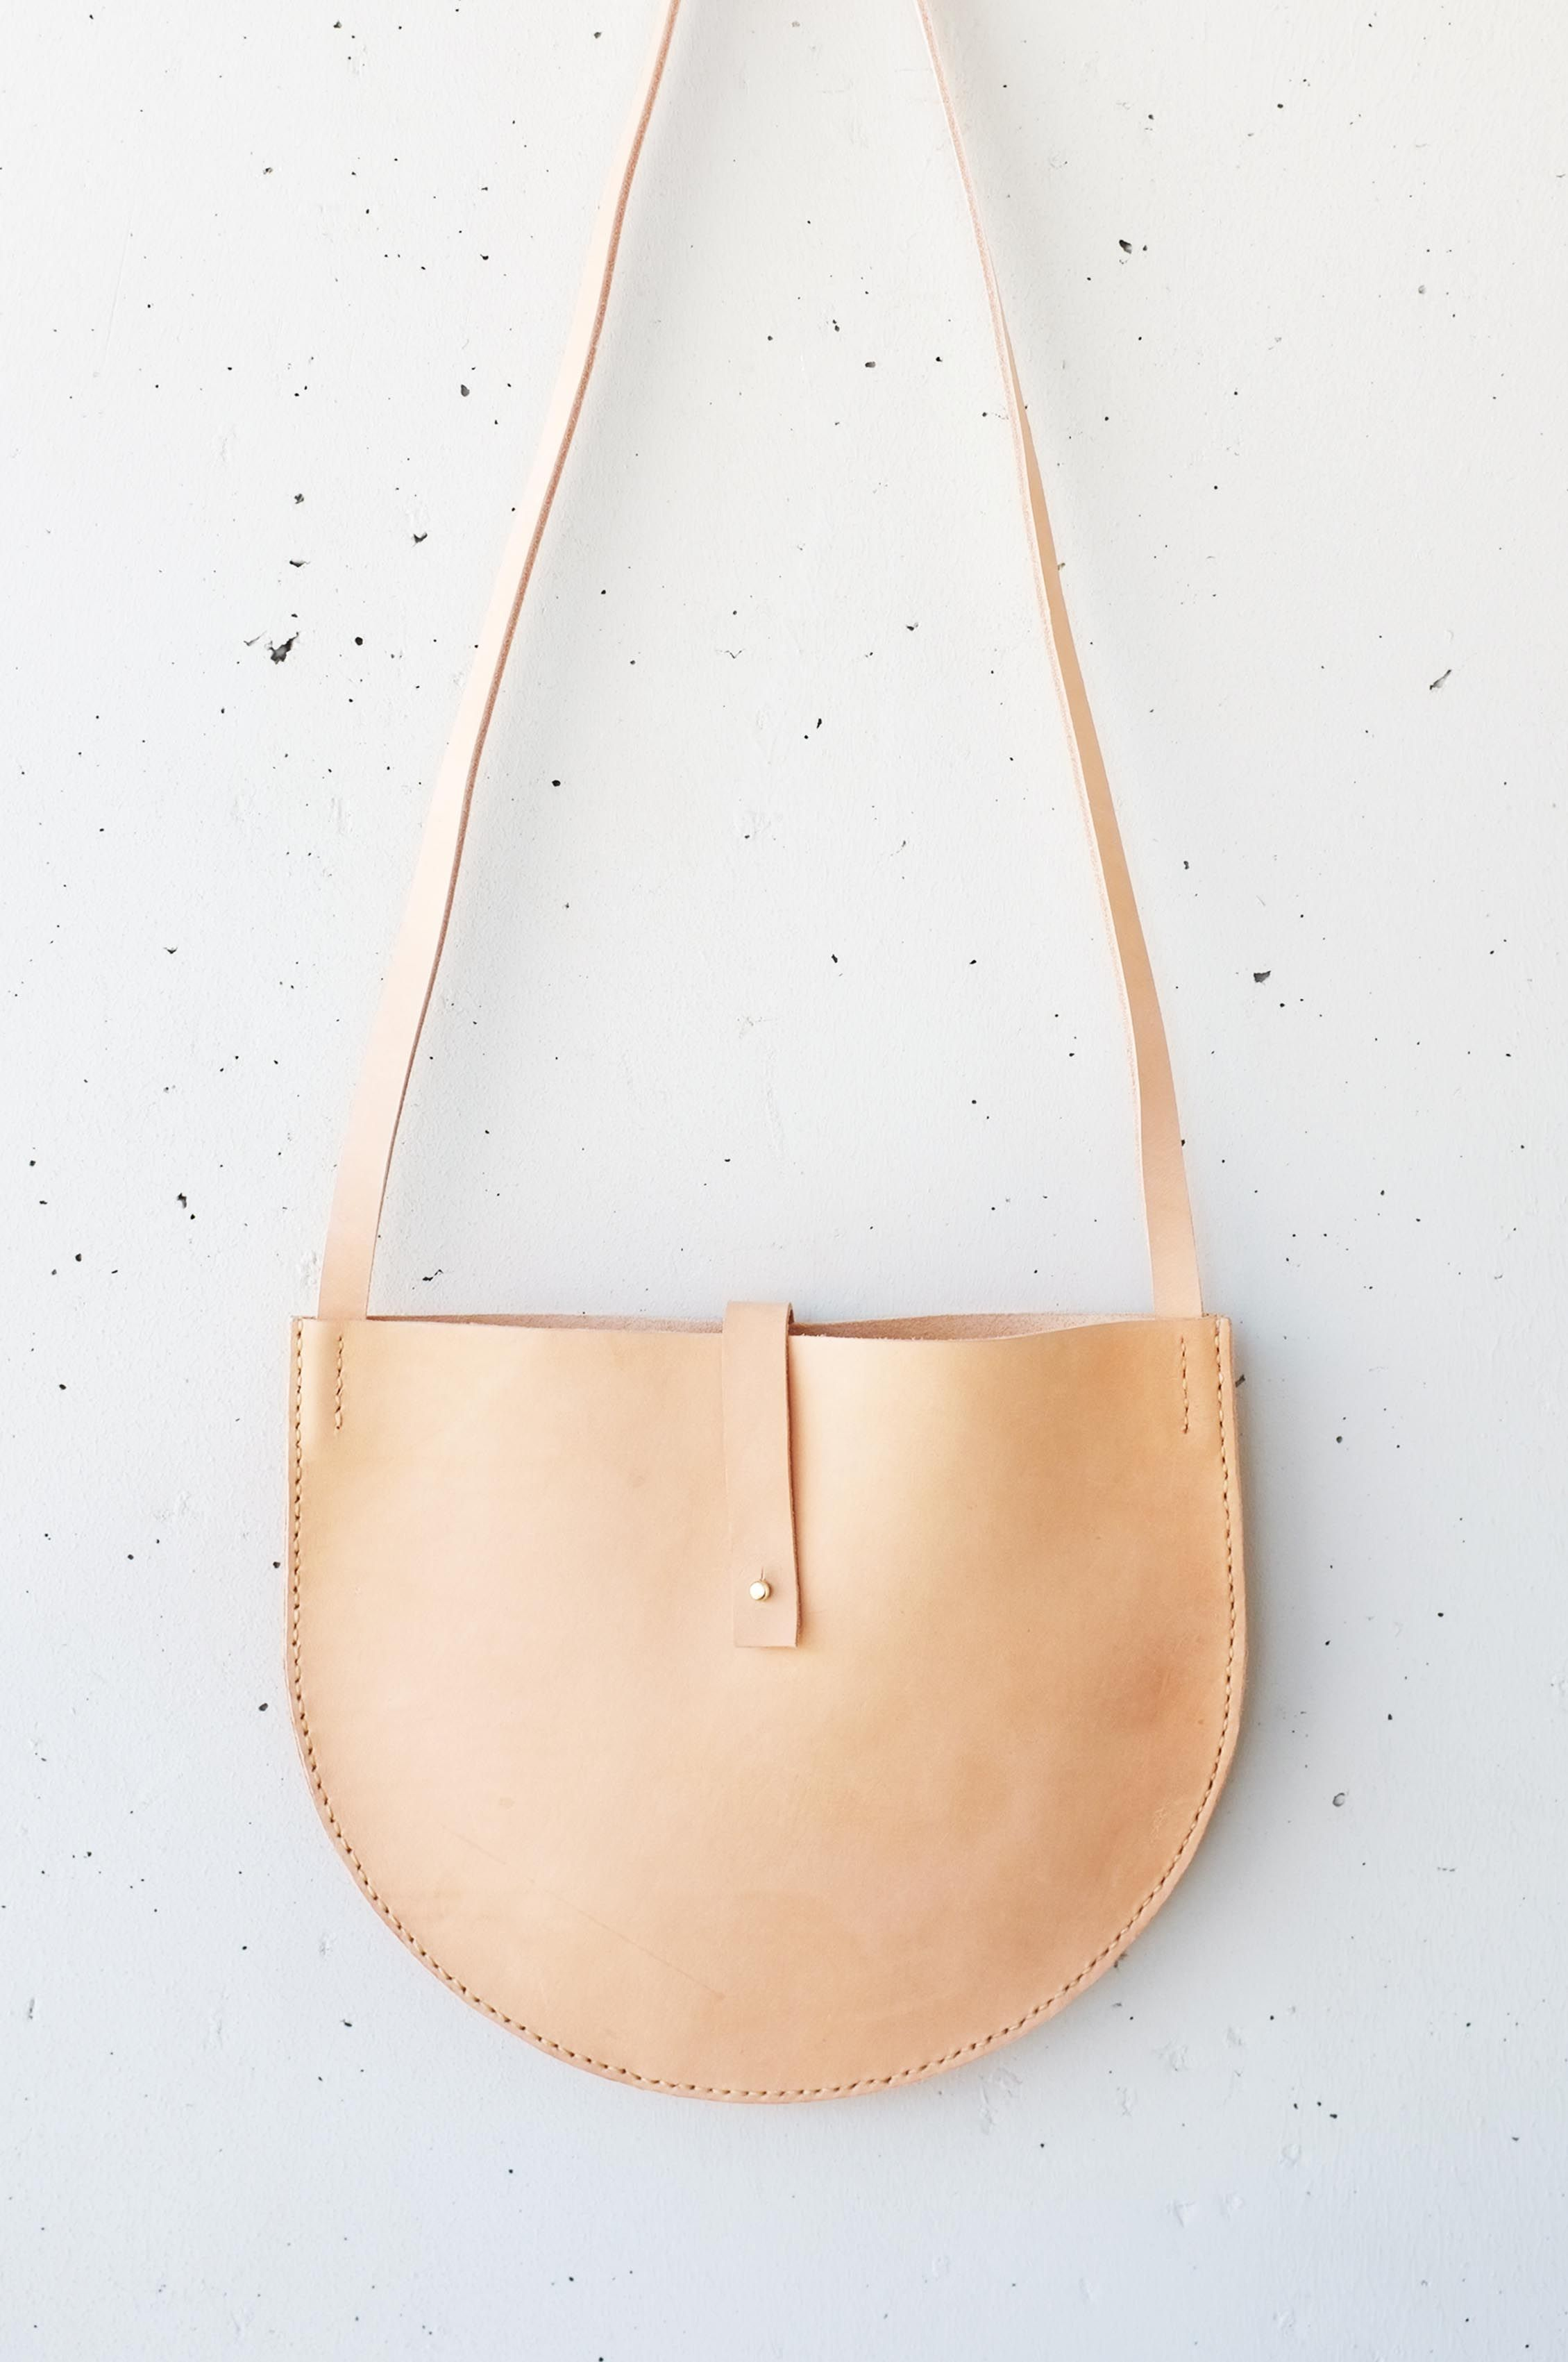 Round Cross Over Bag - Made out of vegetable tanned leather and has a natural color that will go darker and more beautiful with time.The bag has a strap lock to secure your carrying.   Measurements: 30cm x 24.5cm  Handcrafted by Emma Wright